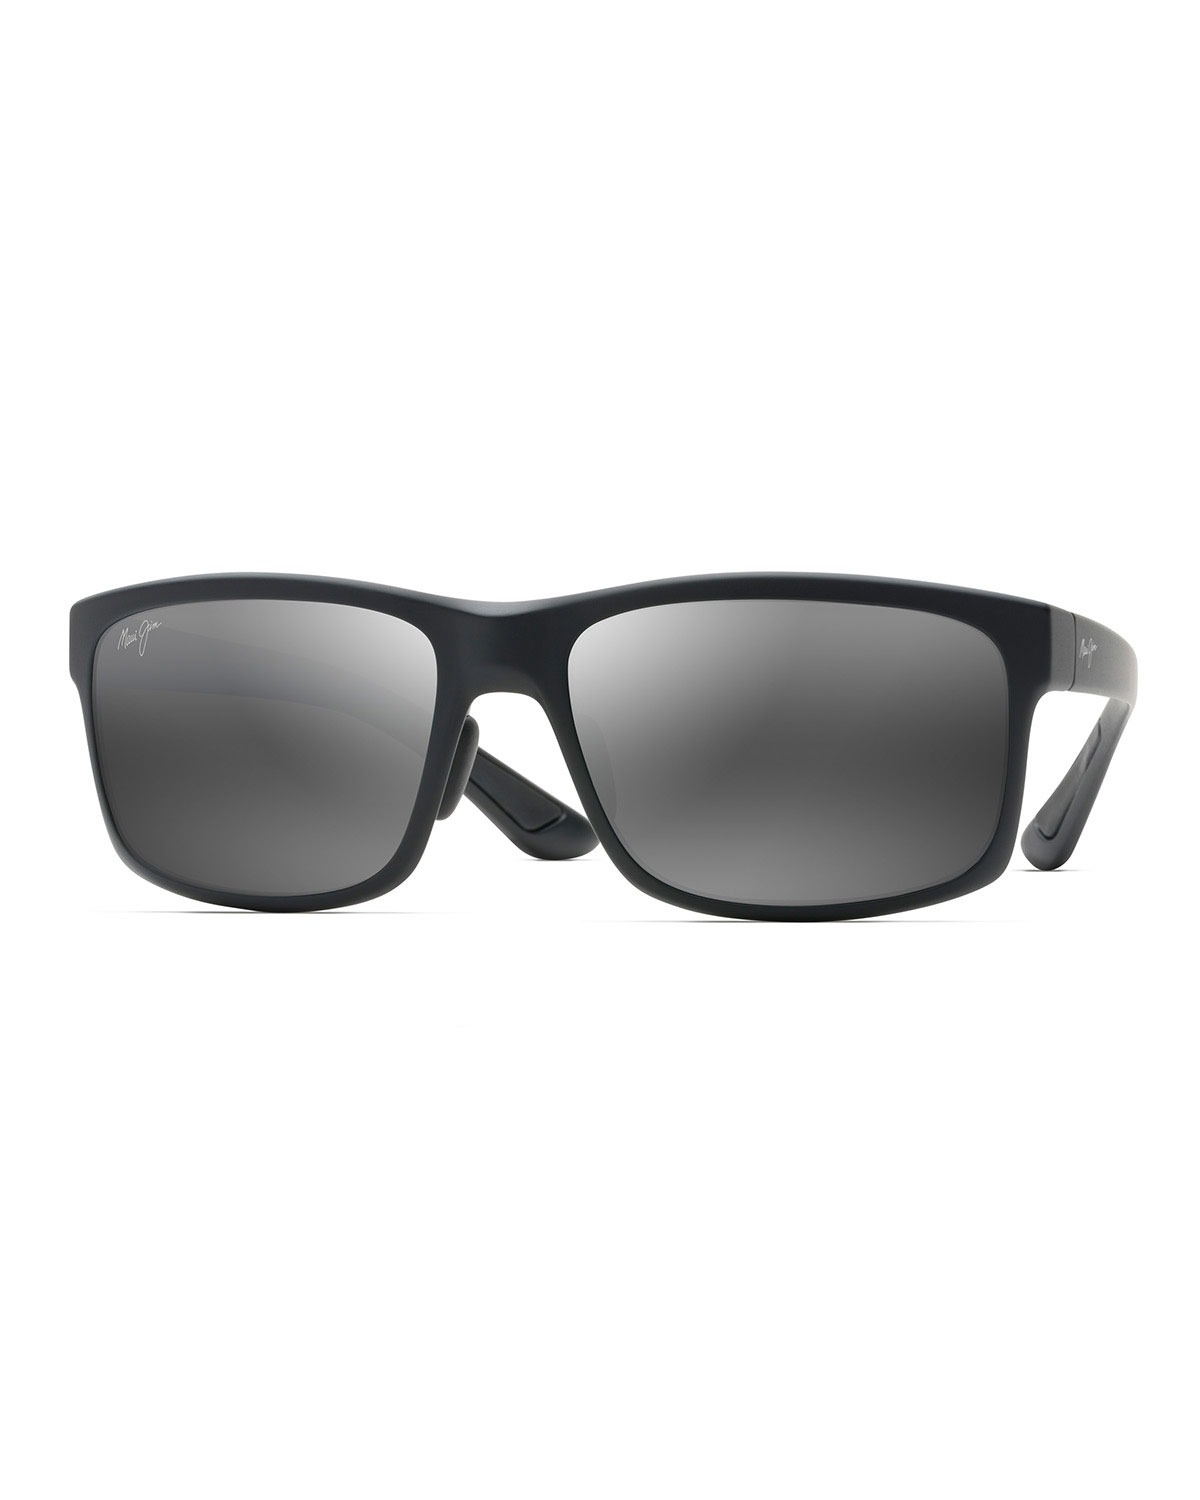 Maui Jim Men's Pokowai Arch Polarized Rectangle Sunglasses